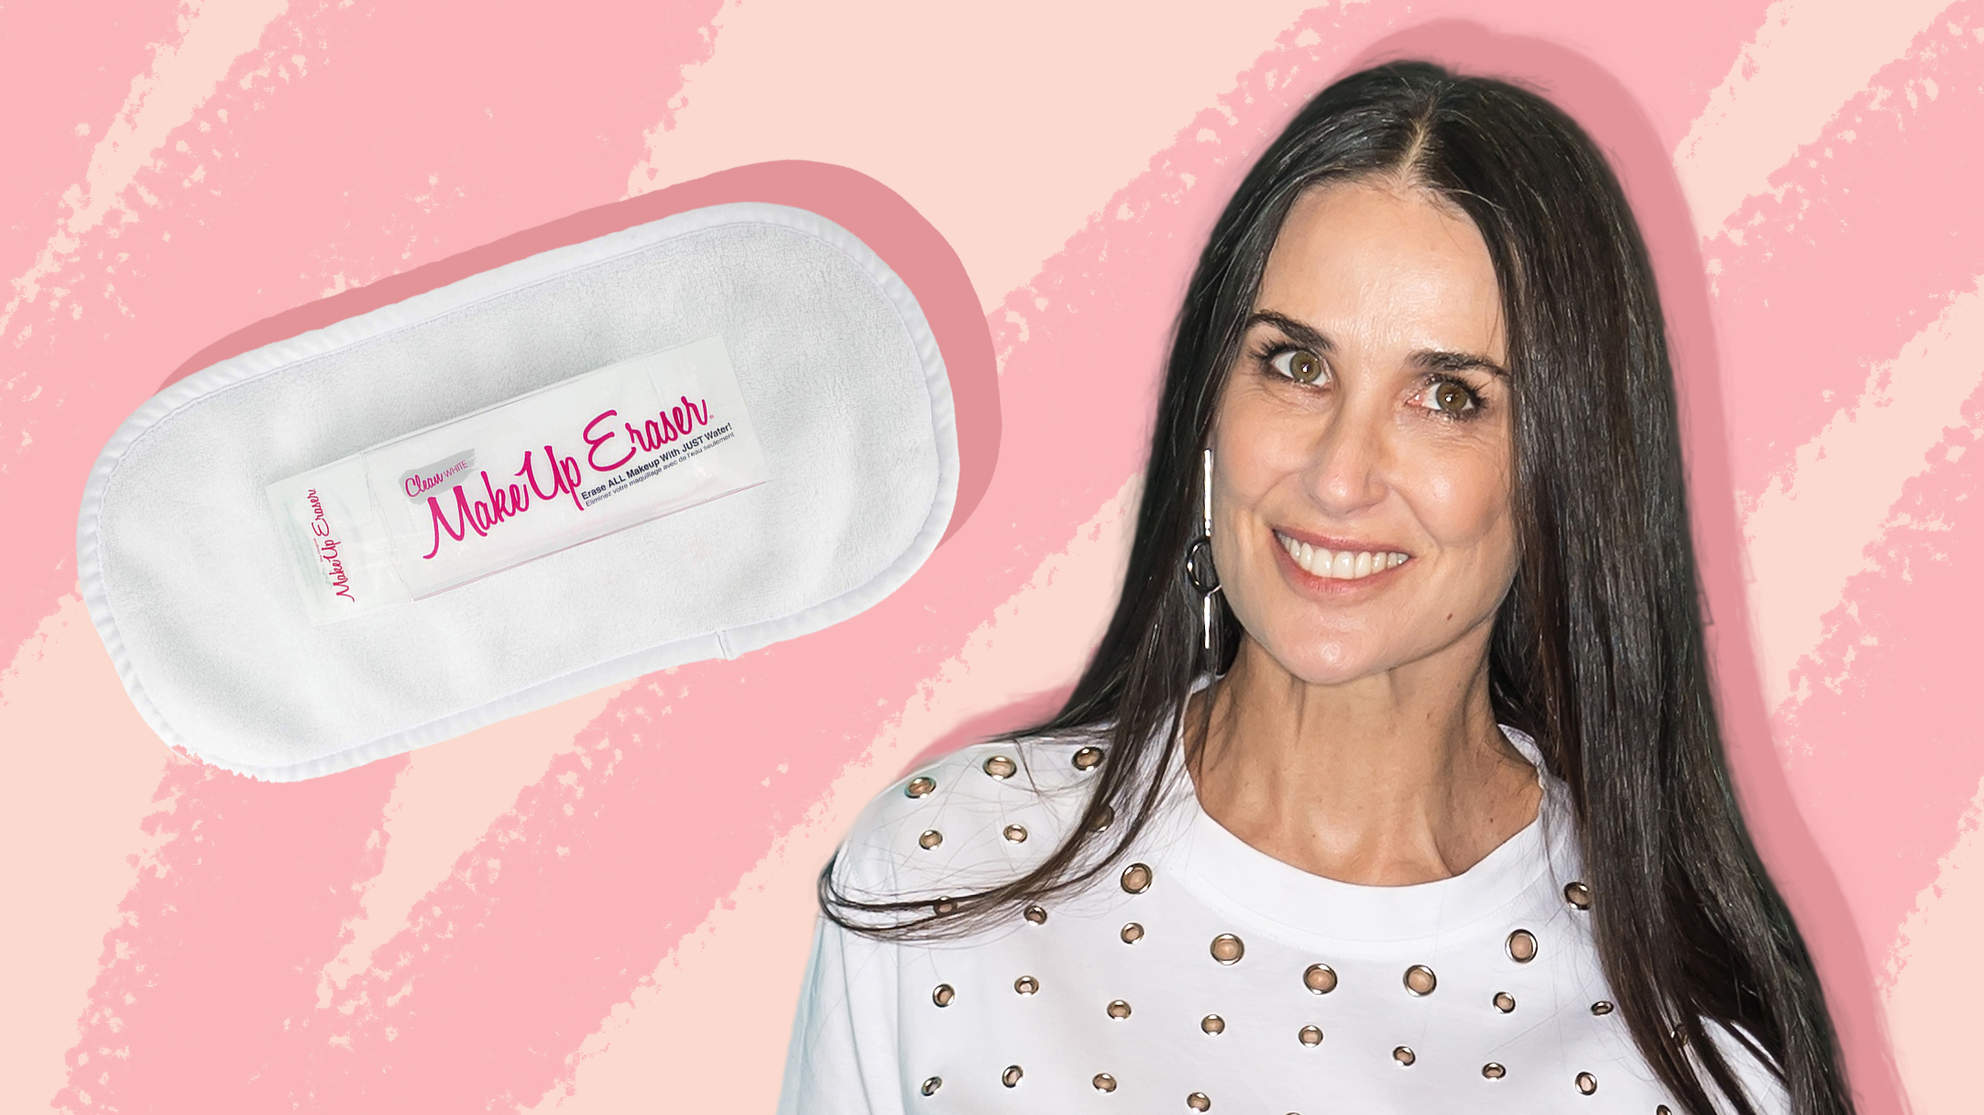 Demi Moore Swears by the MakeUp Eraser for Her Anti-Aging Skincare Routine